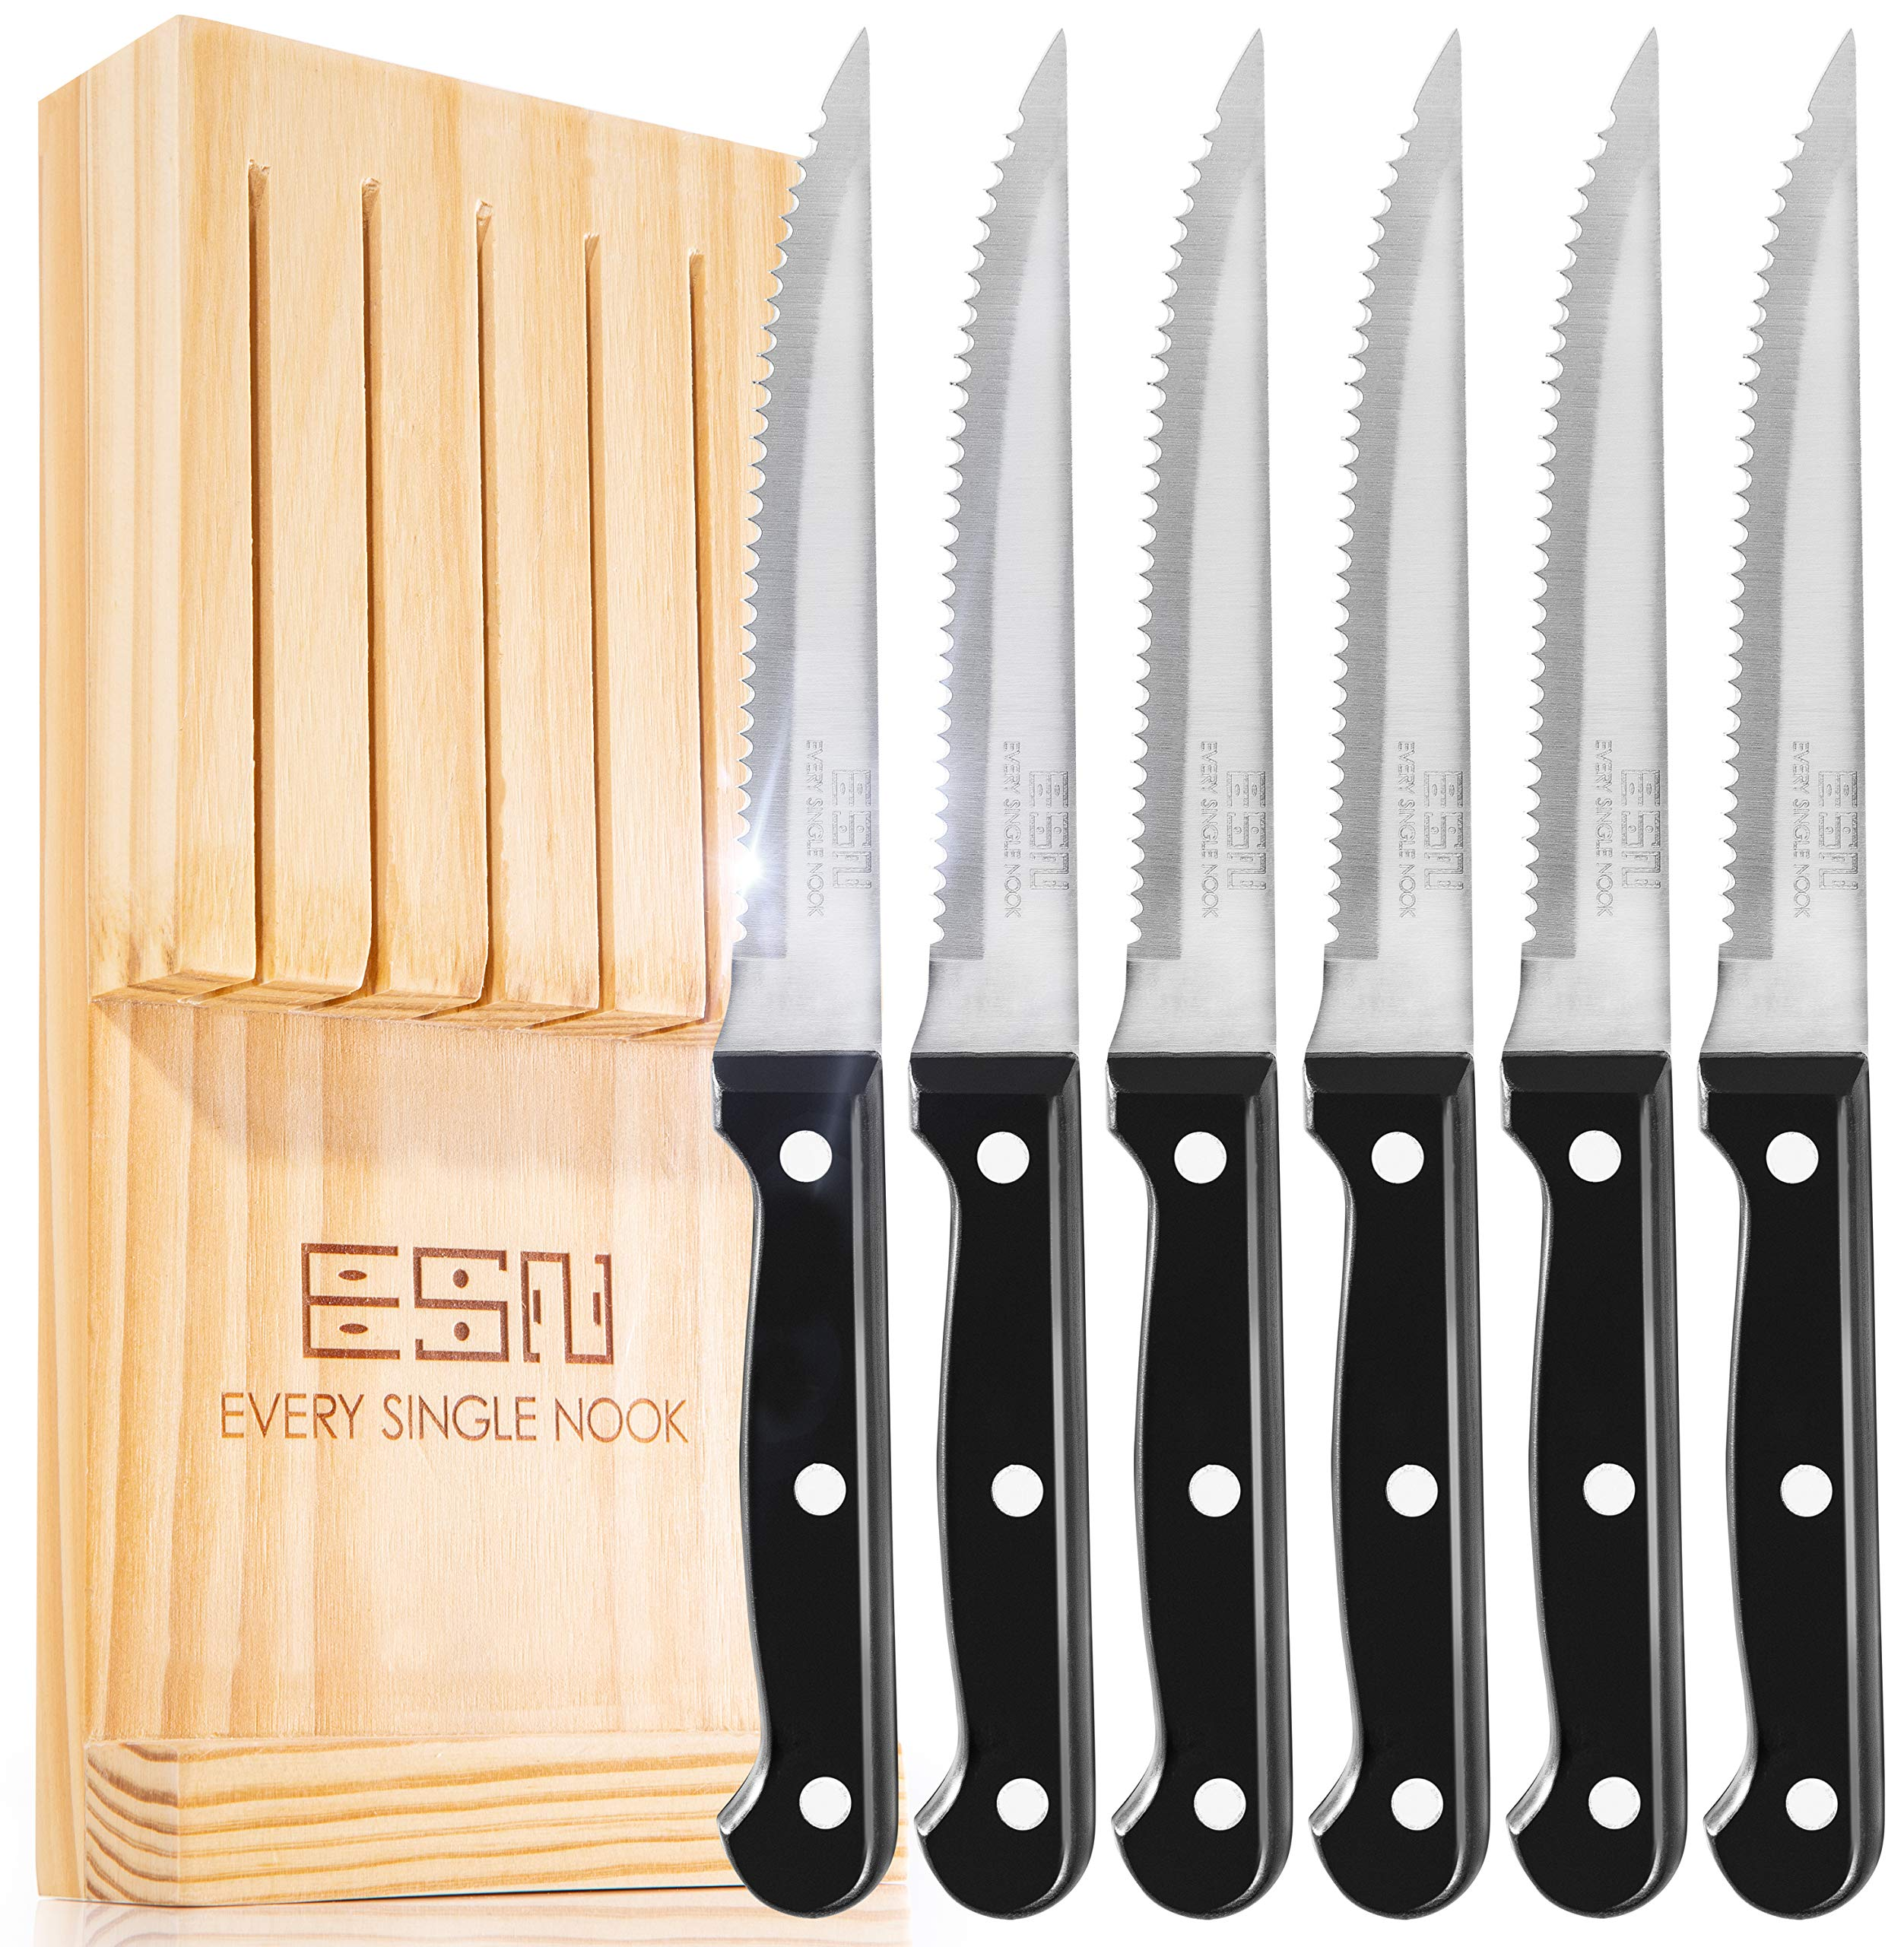 Every Single Nook Steak Knife Set of 6 Gift Box, Premium Smooth Serrated Dinner Knives for Great BBQ, Wedding and Family Dinner Gatherings, No Shapening Needed. Storage Block for Easy Storage. by Every Single Nook